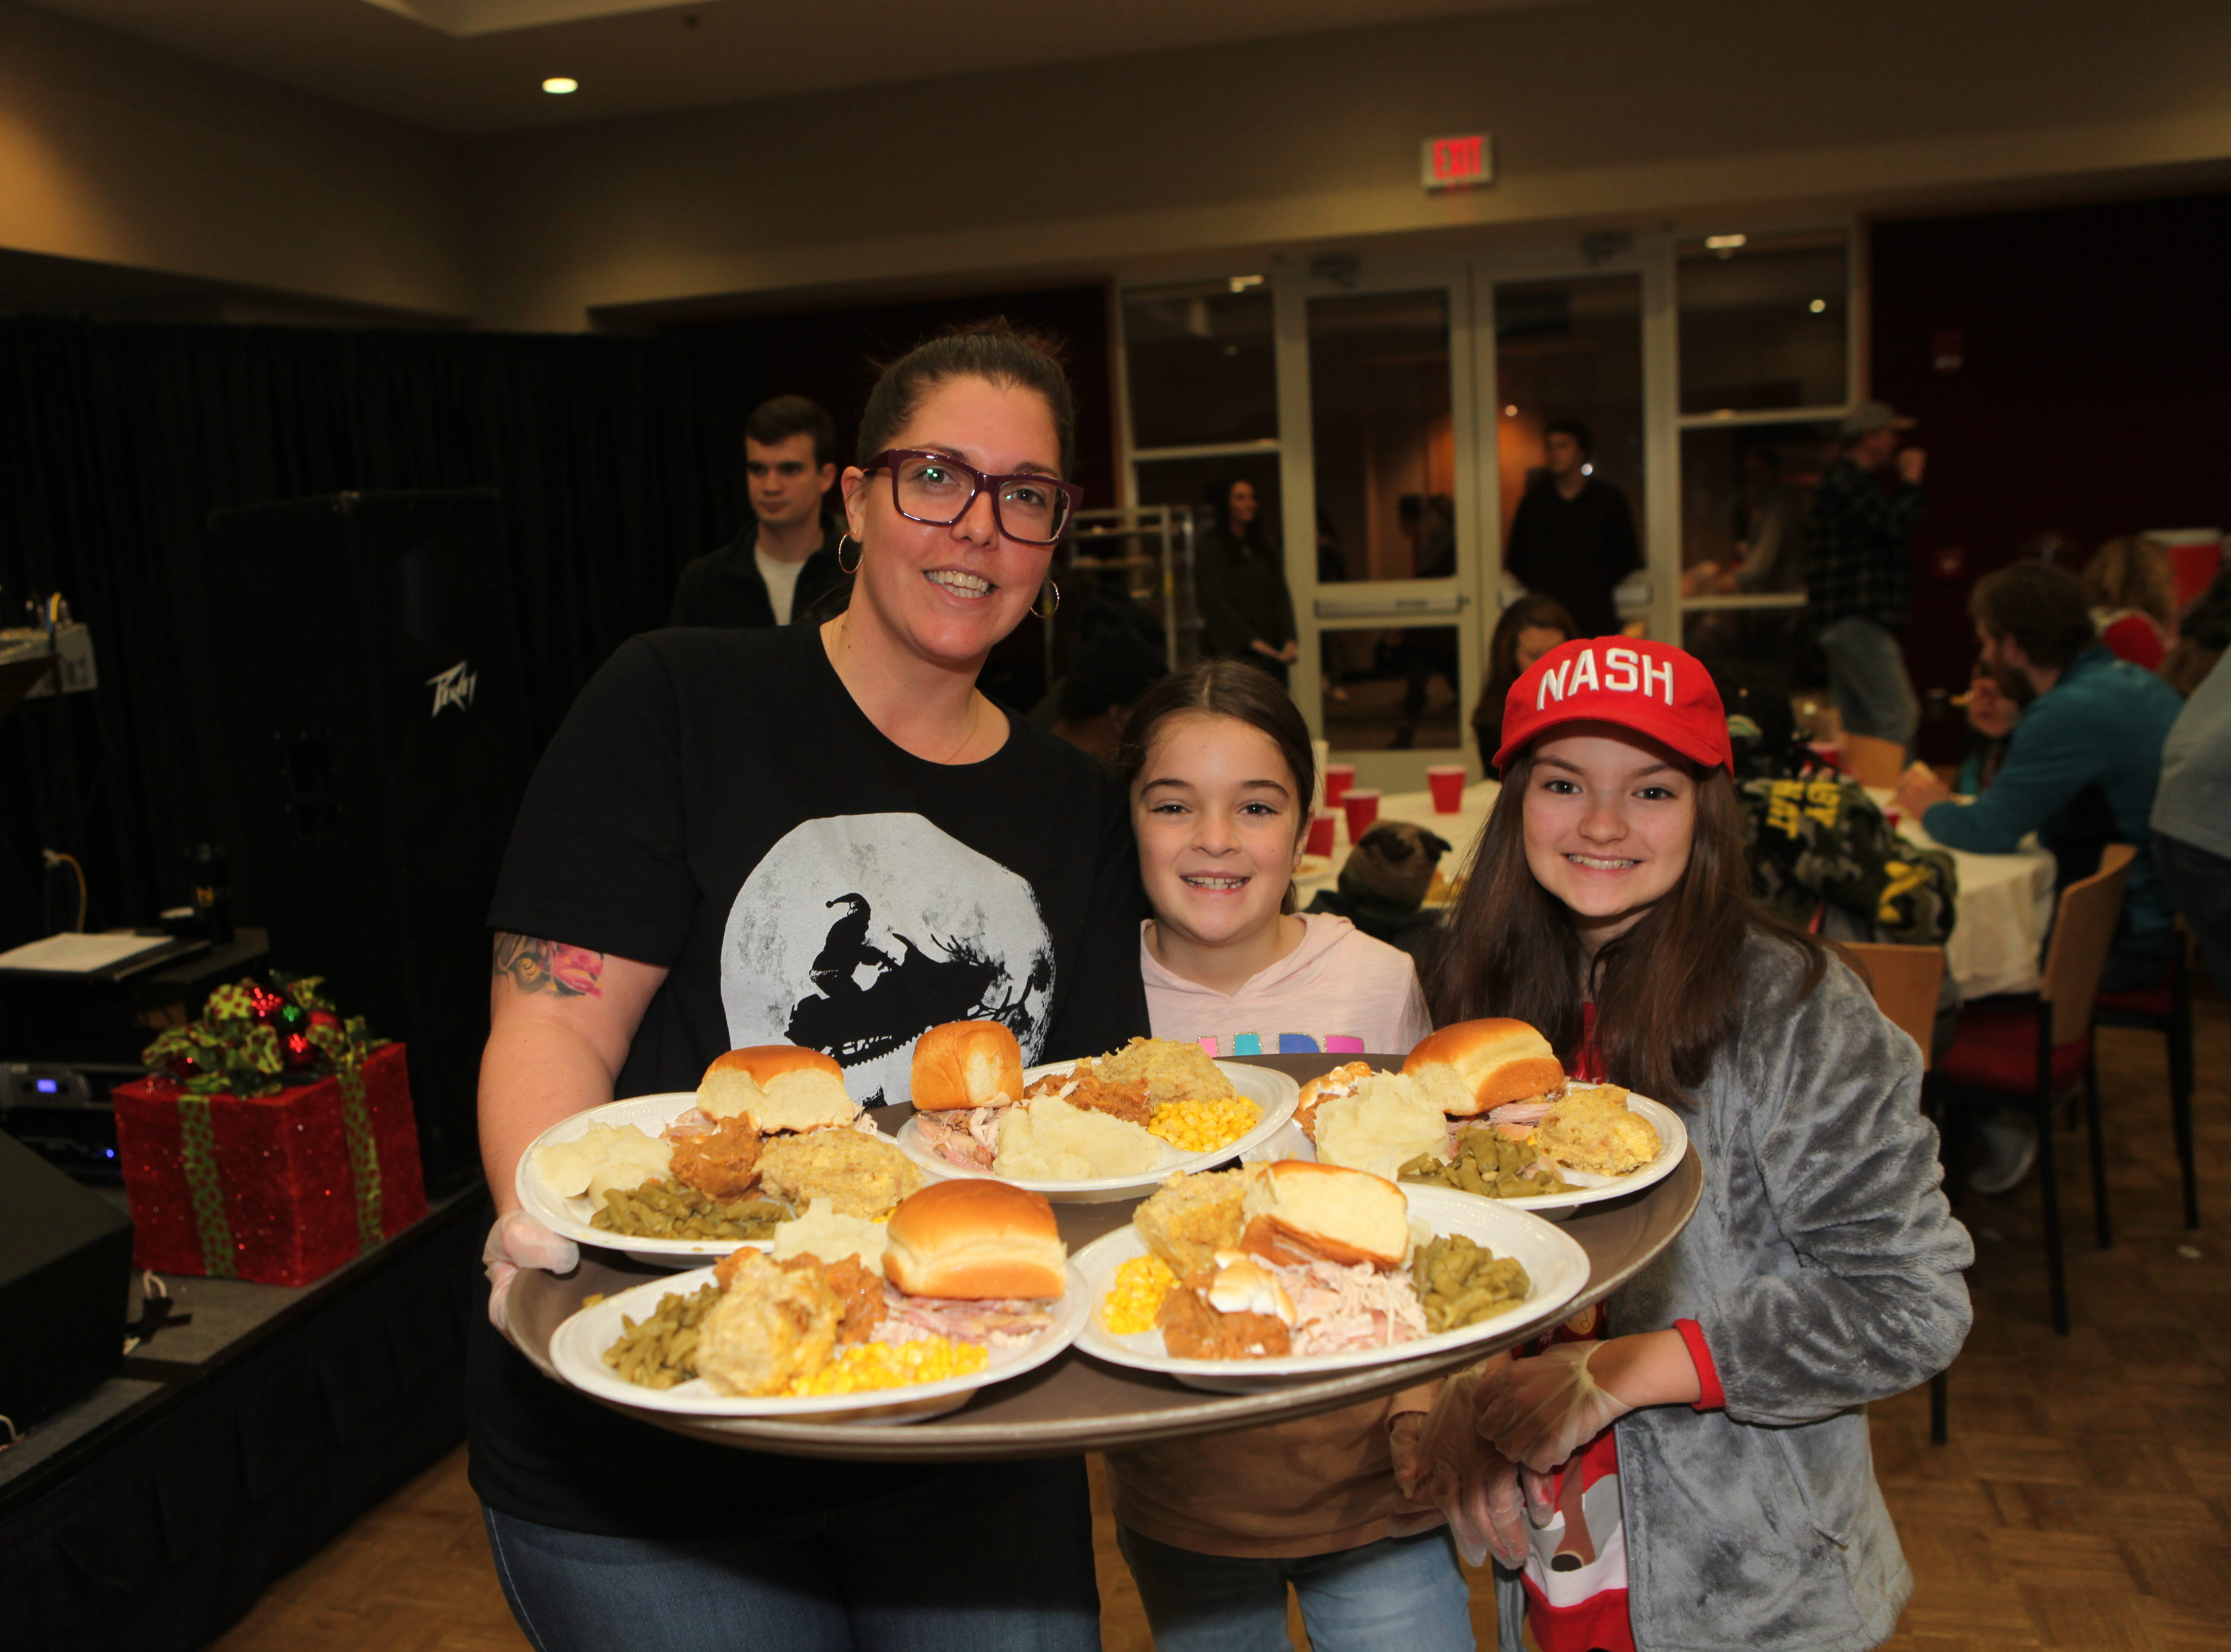 Khloe Van Hooser, Tracy Roberts and Sophia Powell deliver food during the Radical Mission's annual Warm Souls event at APSU's Morgan University Center on Christmas Eve, Dec. 24, 2018.